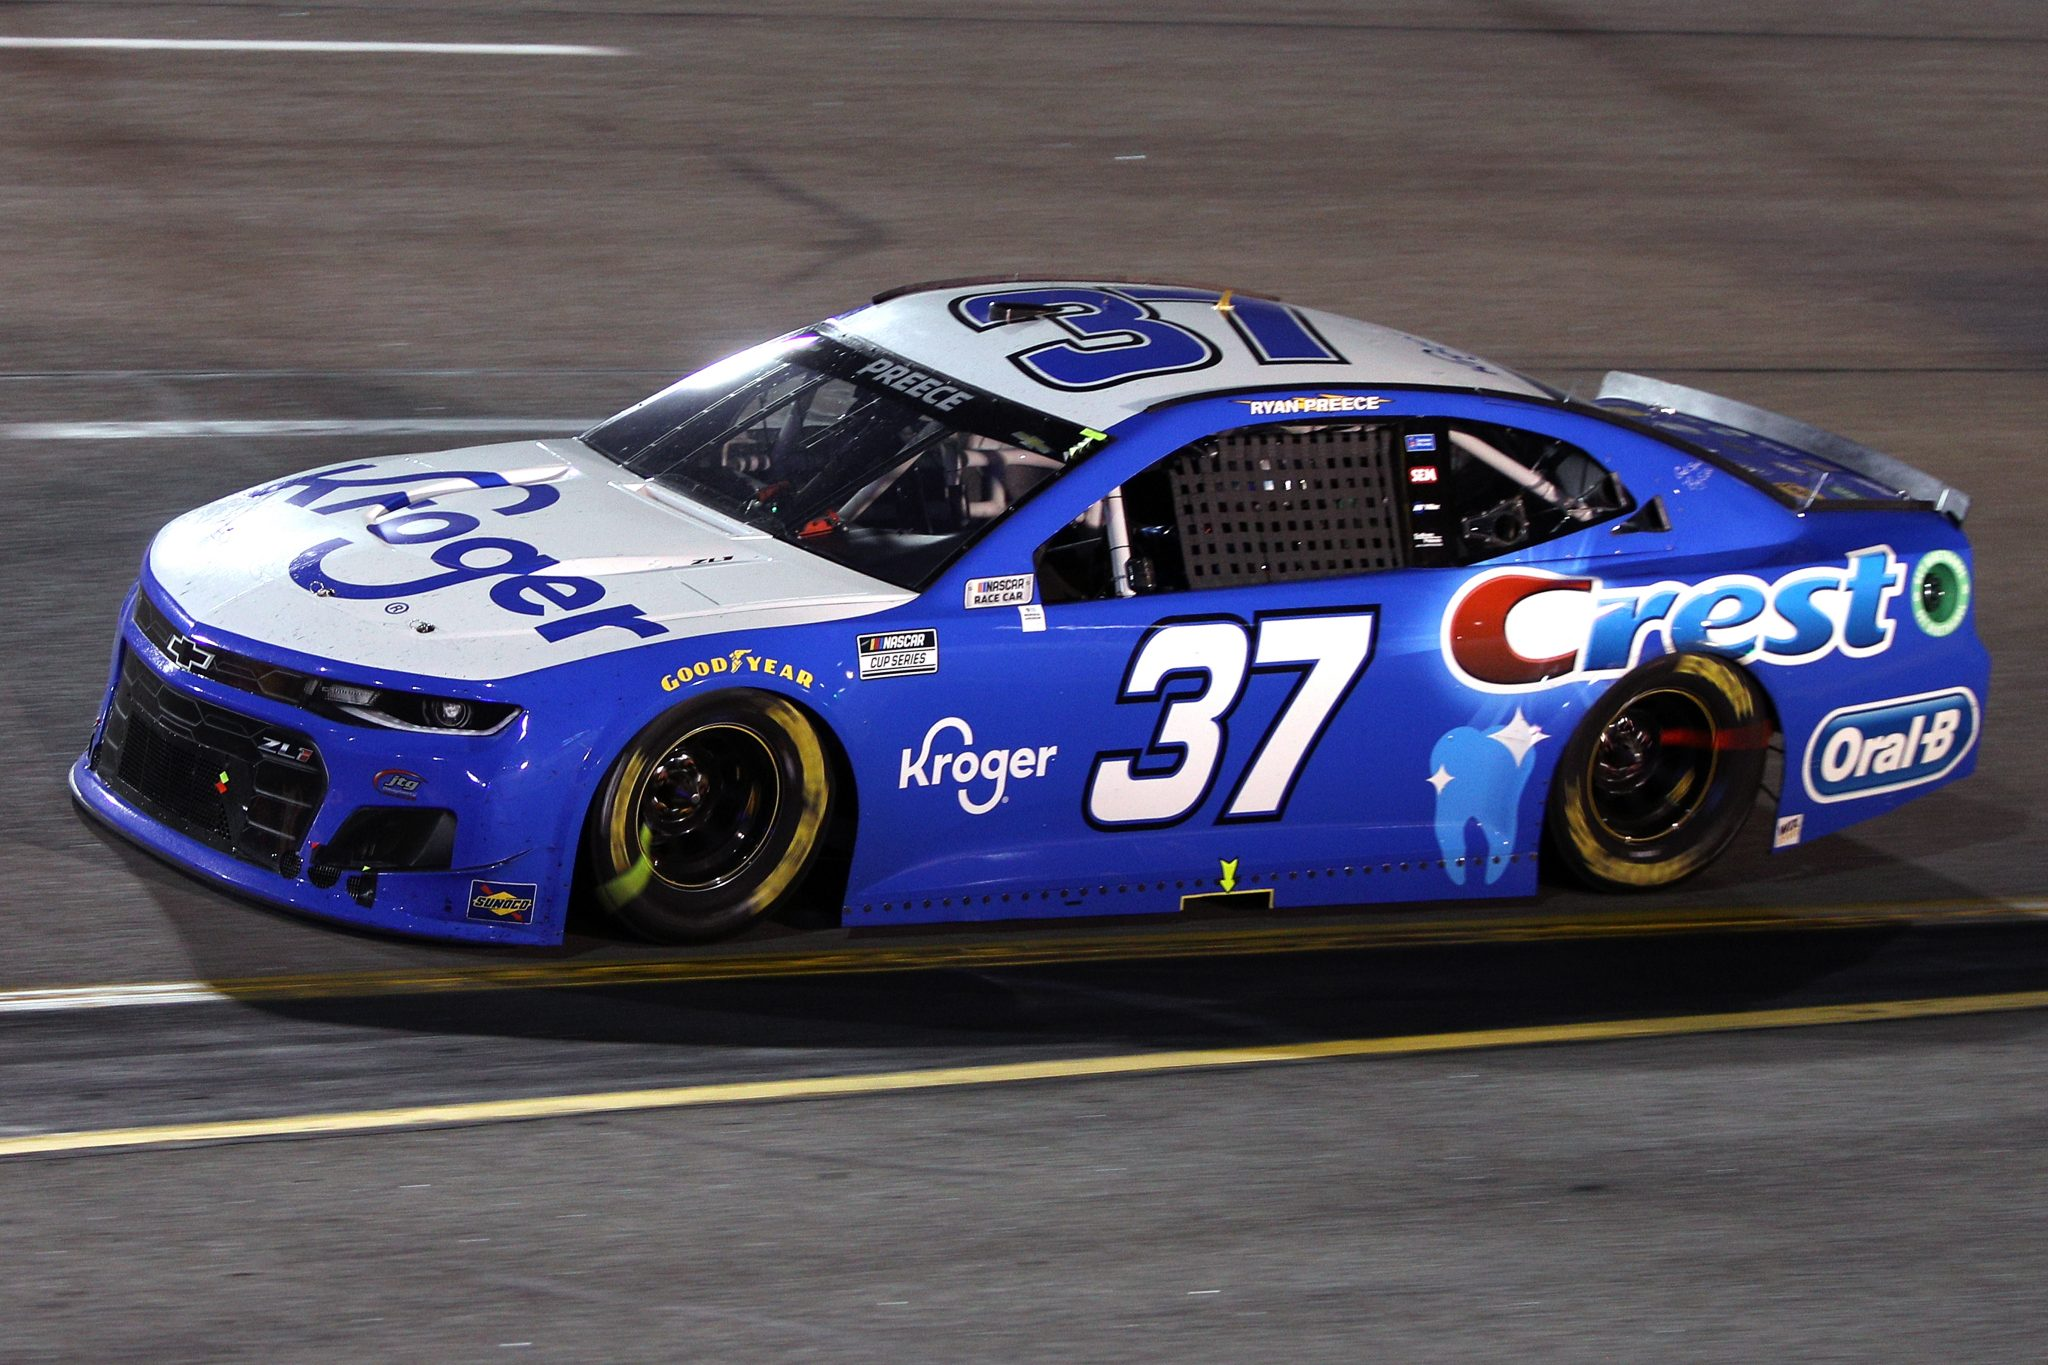 RICHMOND, VIRGINIA - SEPTEMBER 11: Ryan Preece, driver of the #37 Kroger/Crest Chevrolet, drives during the NASCAR Cup Series Federated Auto Parts 400 Salute to First Responders at Richmond Raceway on September 11, 2021 in Richmond, Virginia. (Photo by Sean Gardner/Getty Images) | Getty Images